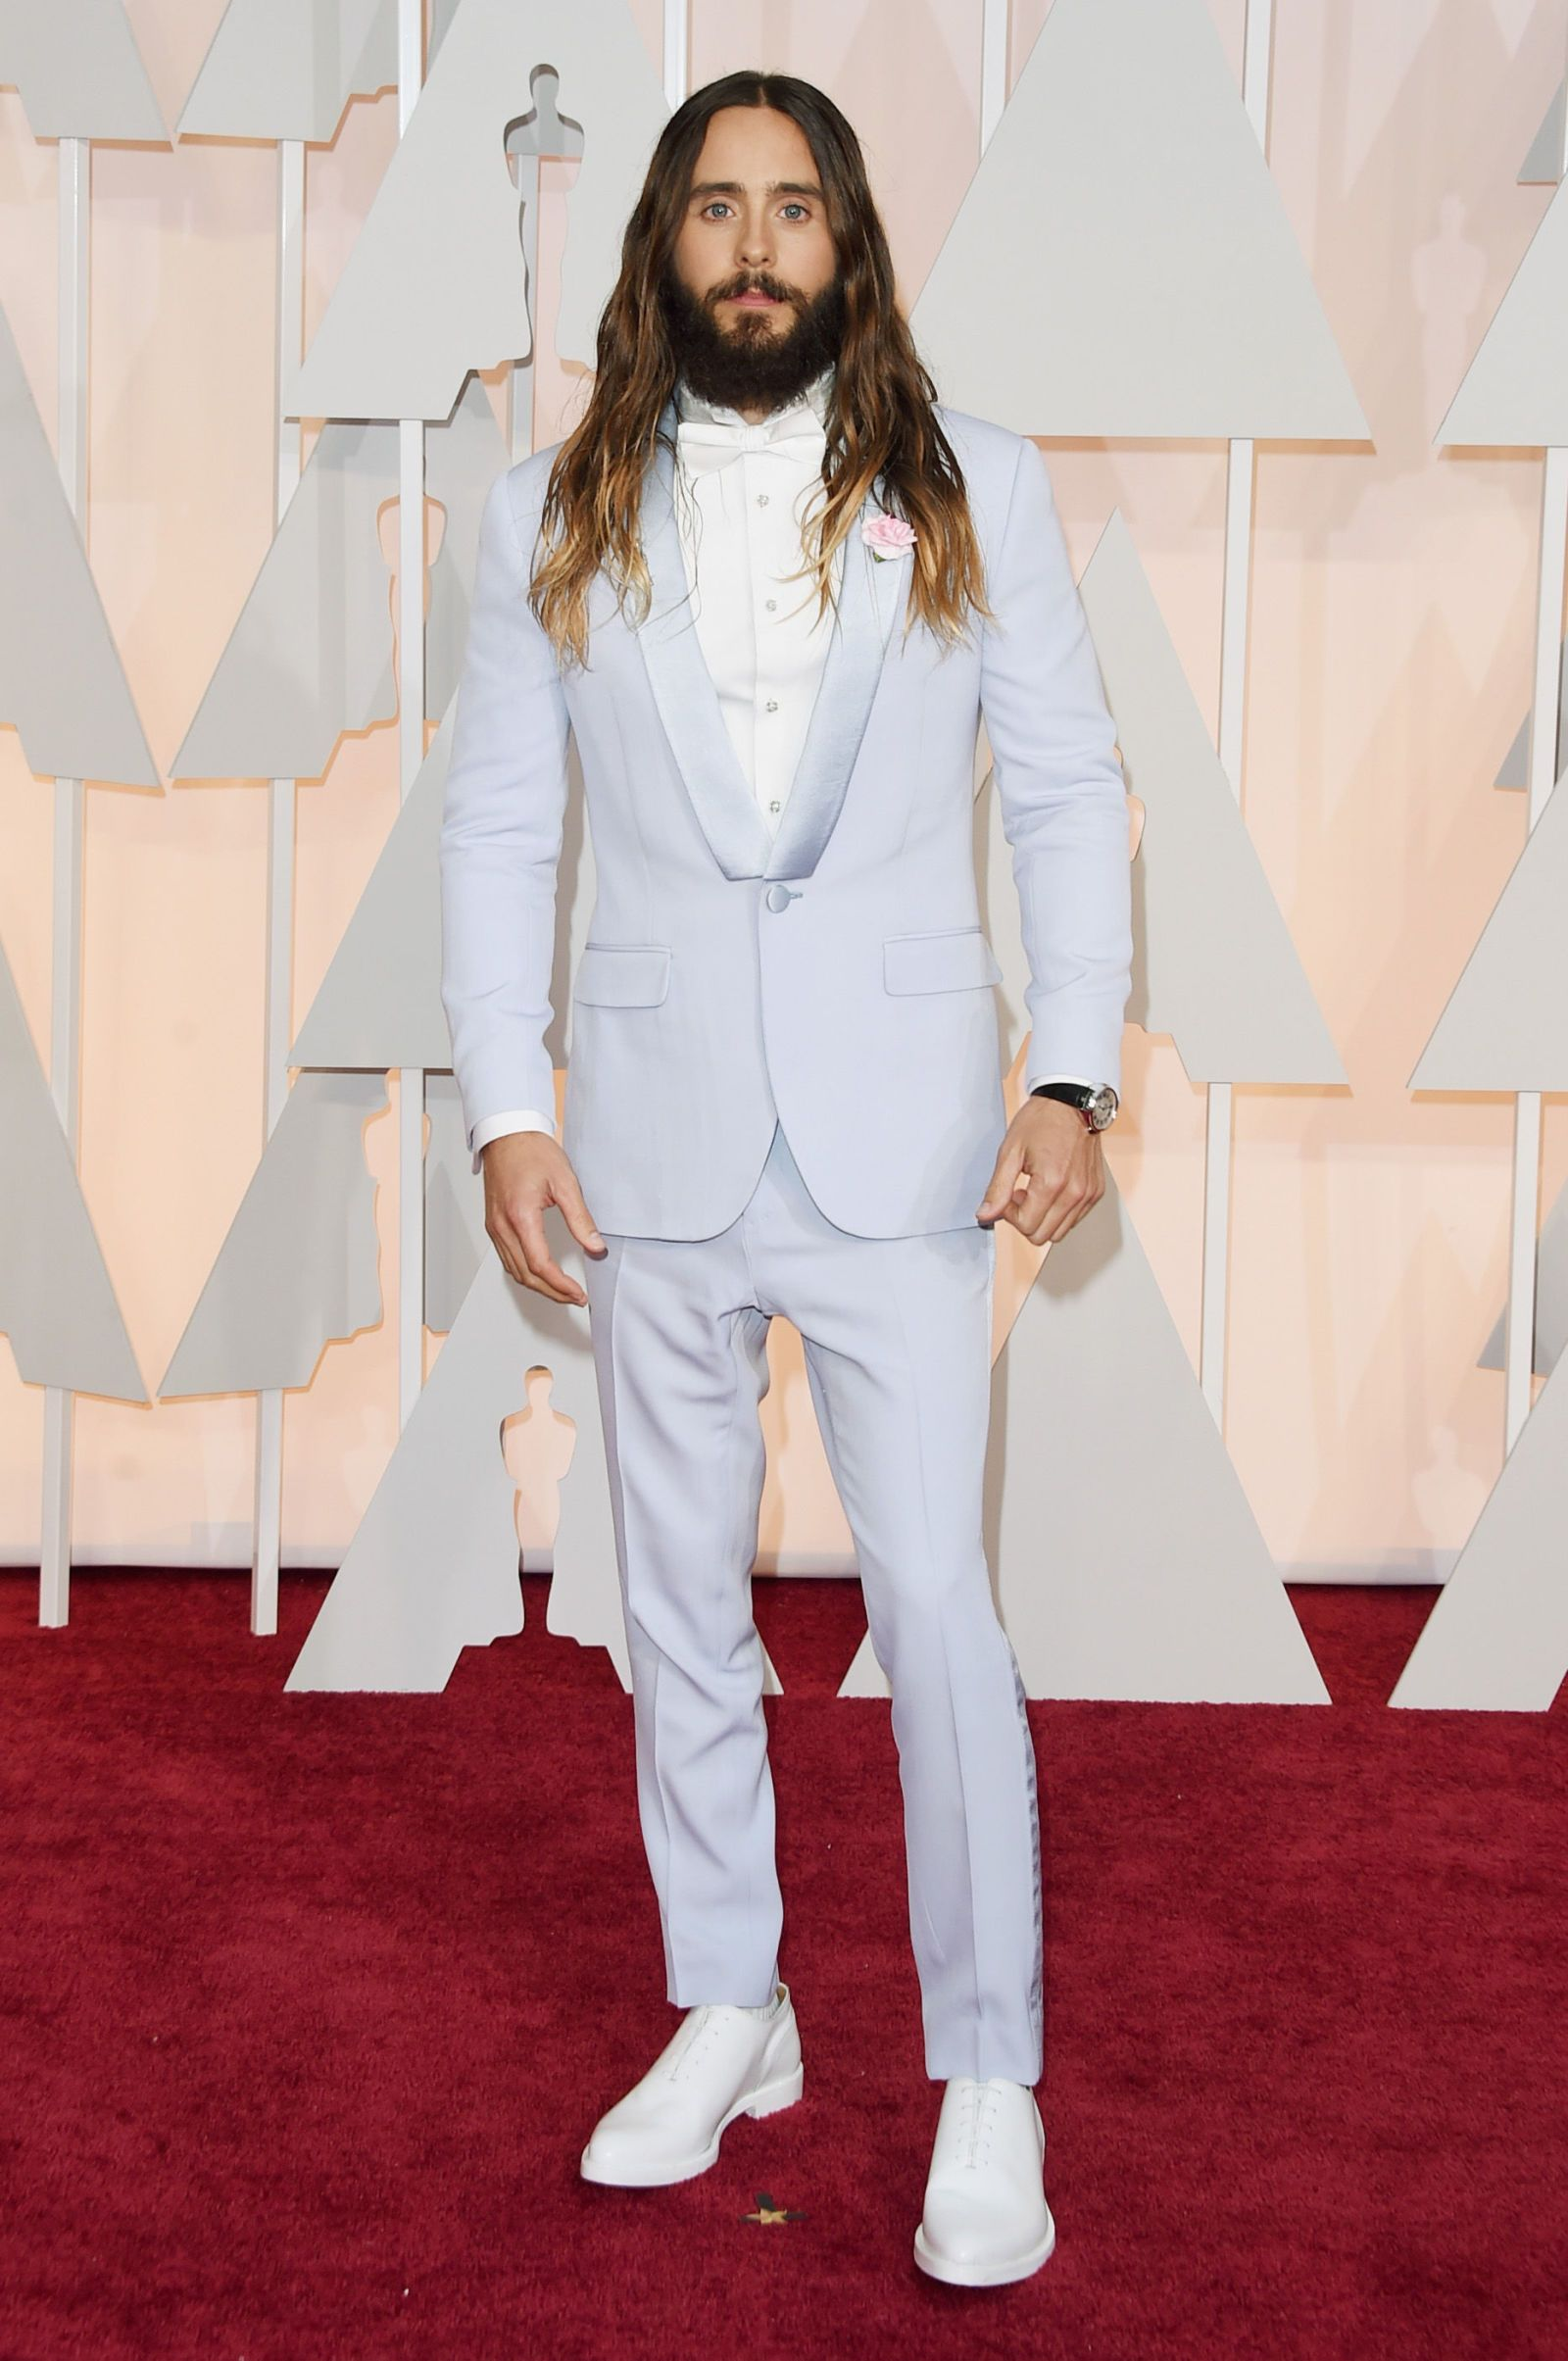 db18bd478a4a Jared Leto in a powder blue suit with white shoes and a Fred Leighton Art  Deco Onyx and Diamond Buckle Bar Brooch at the 2015 Oscar Red Carpet.